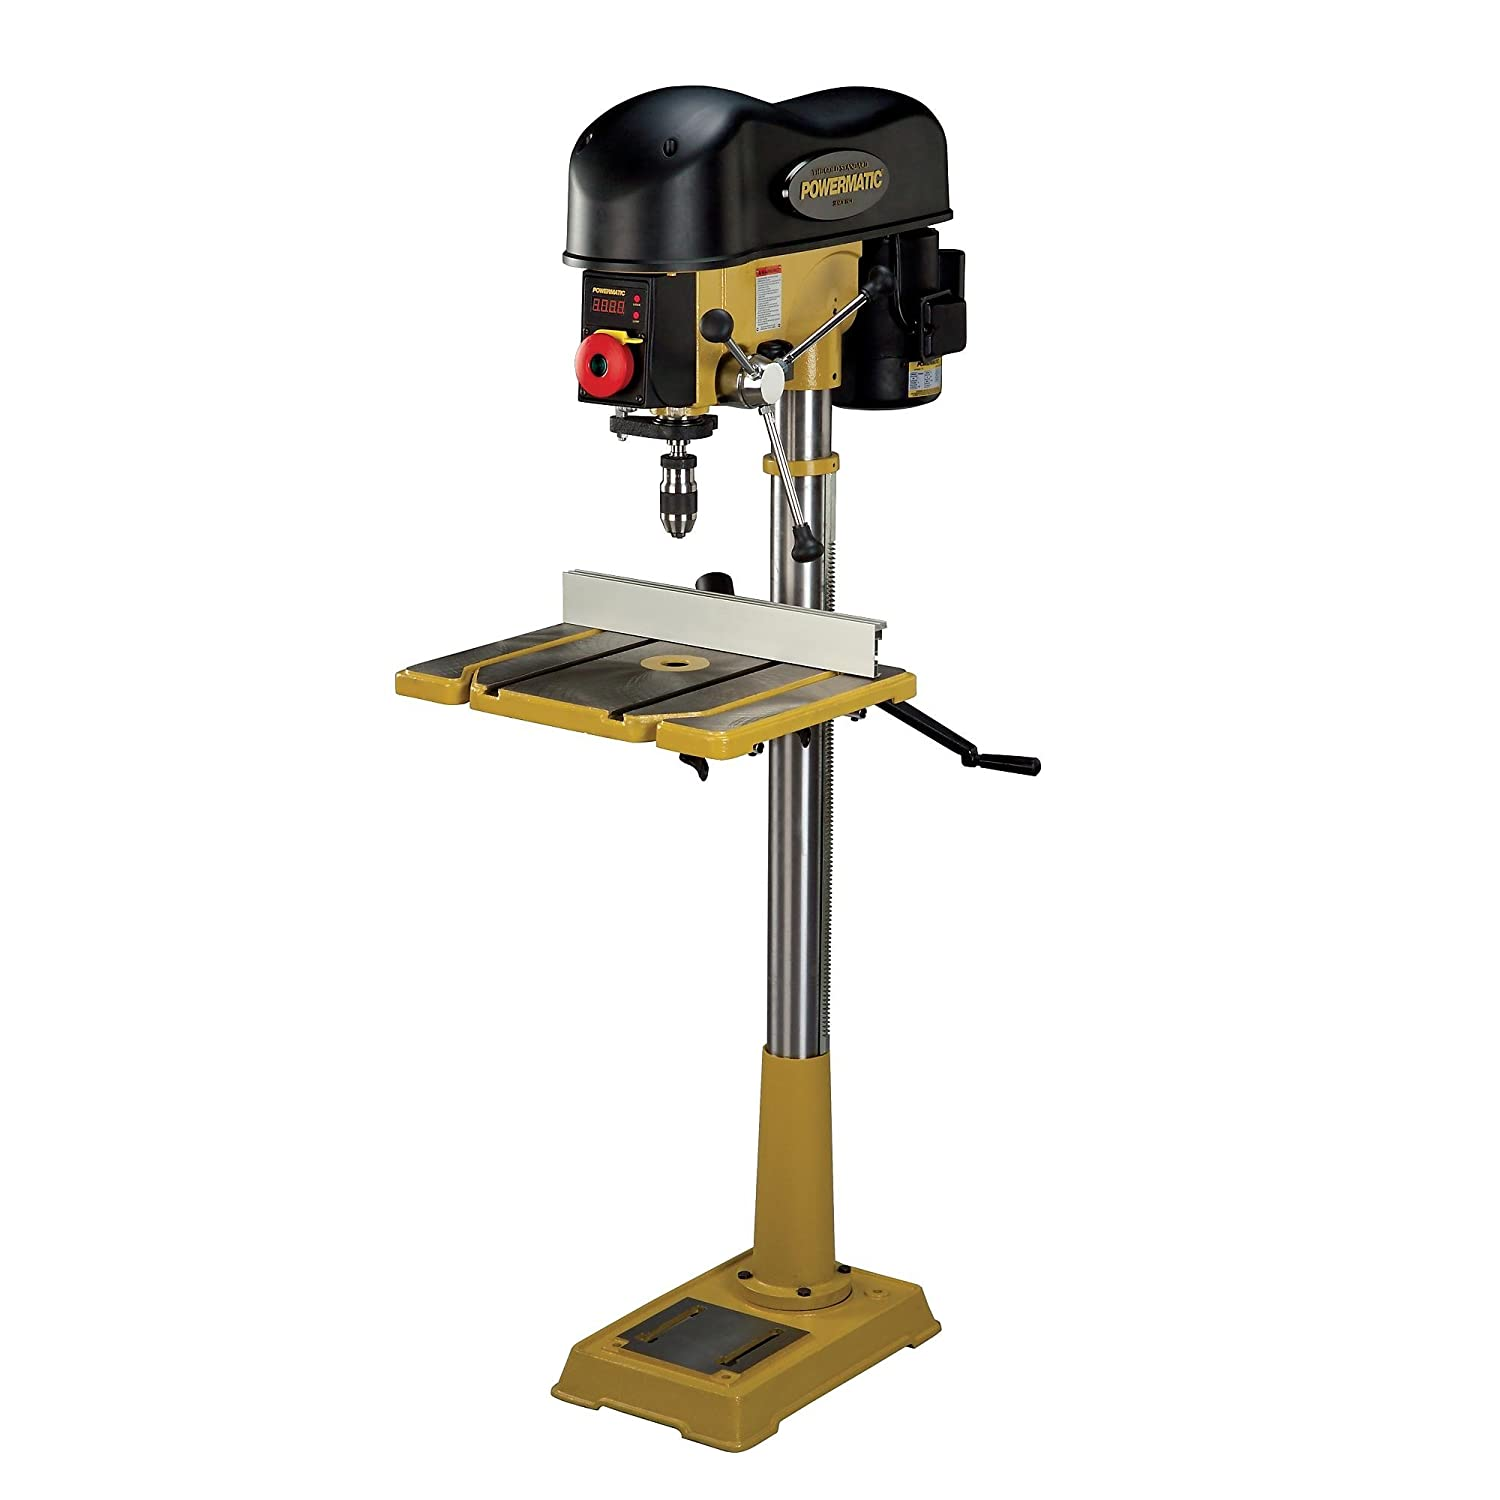 Post it note as a collector while drilling - Powermatic Pm2800 1792800 18 Inch Variable Speed Drill Press Power Magnetic Drill Presses Amazon Com